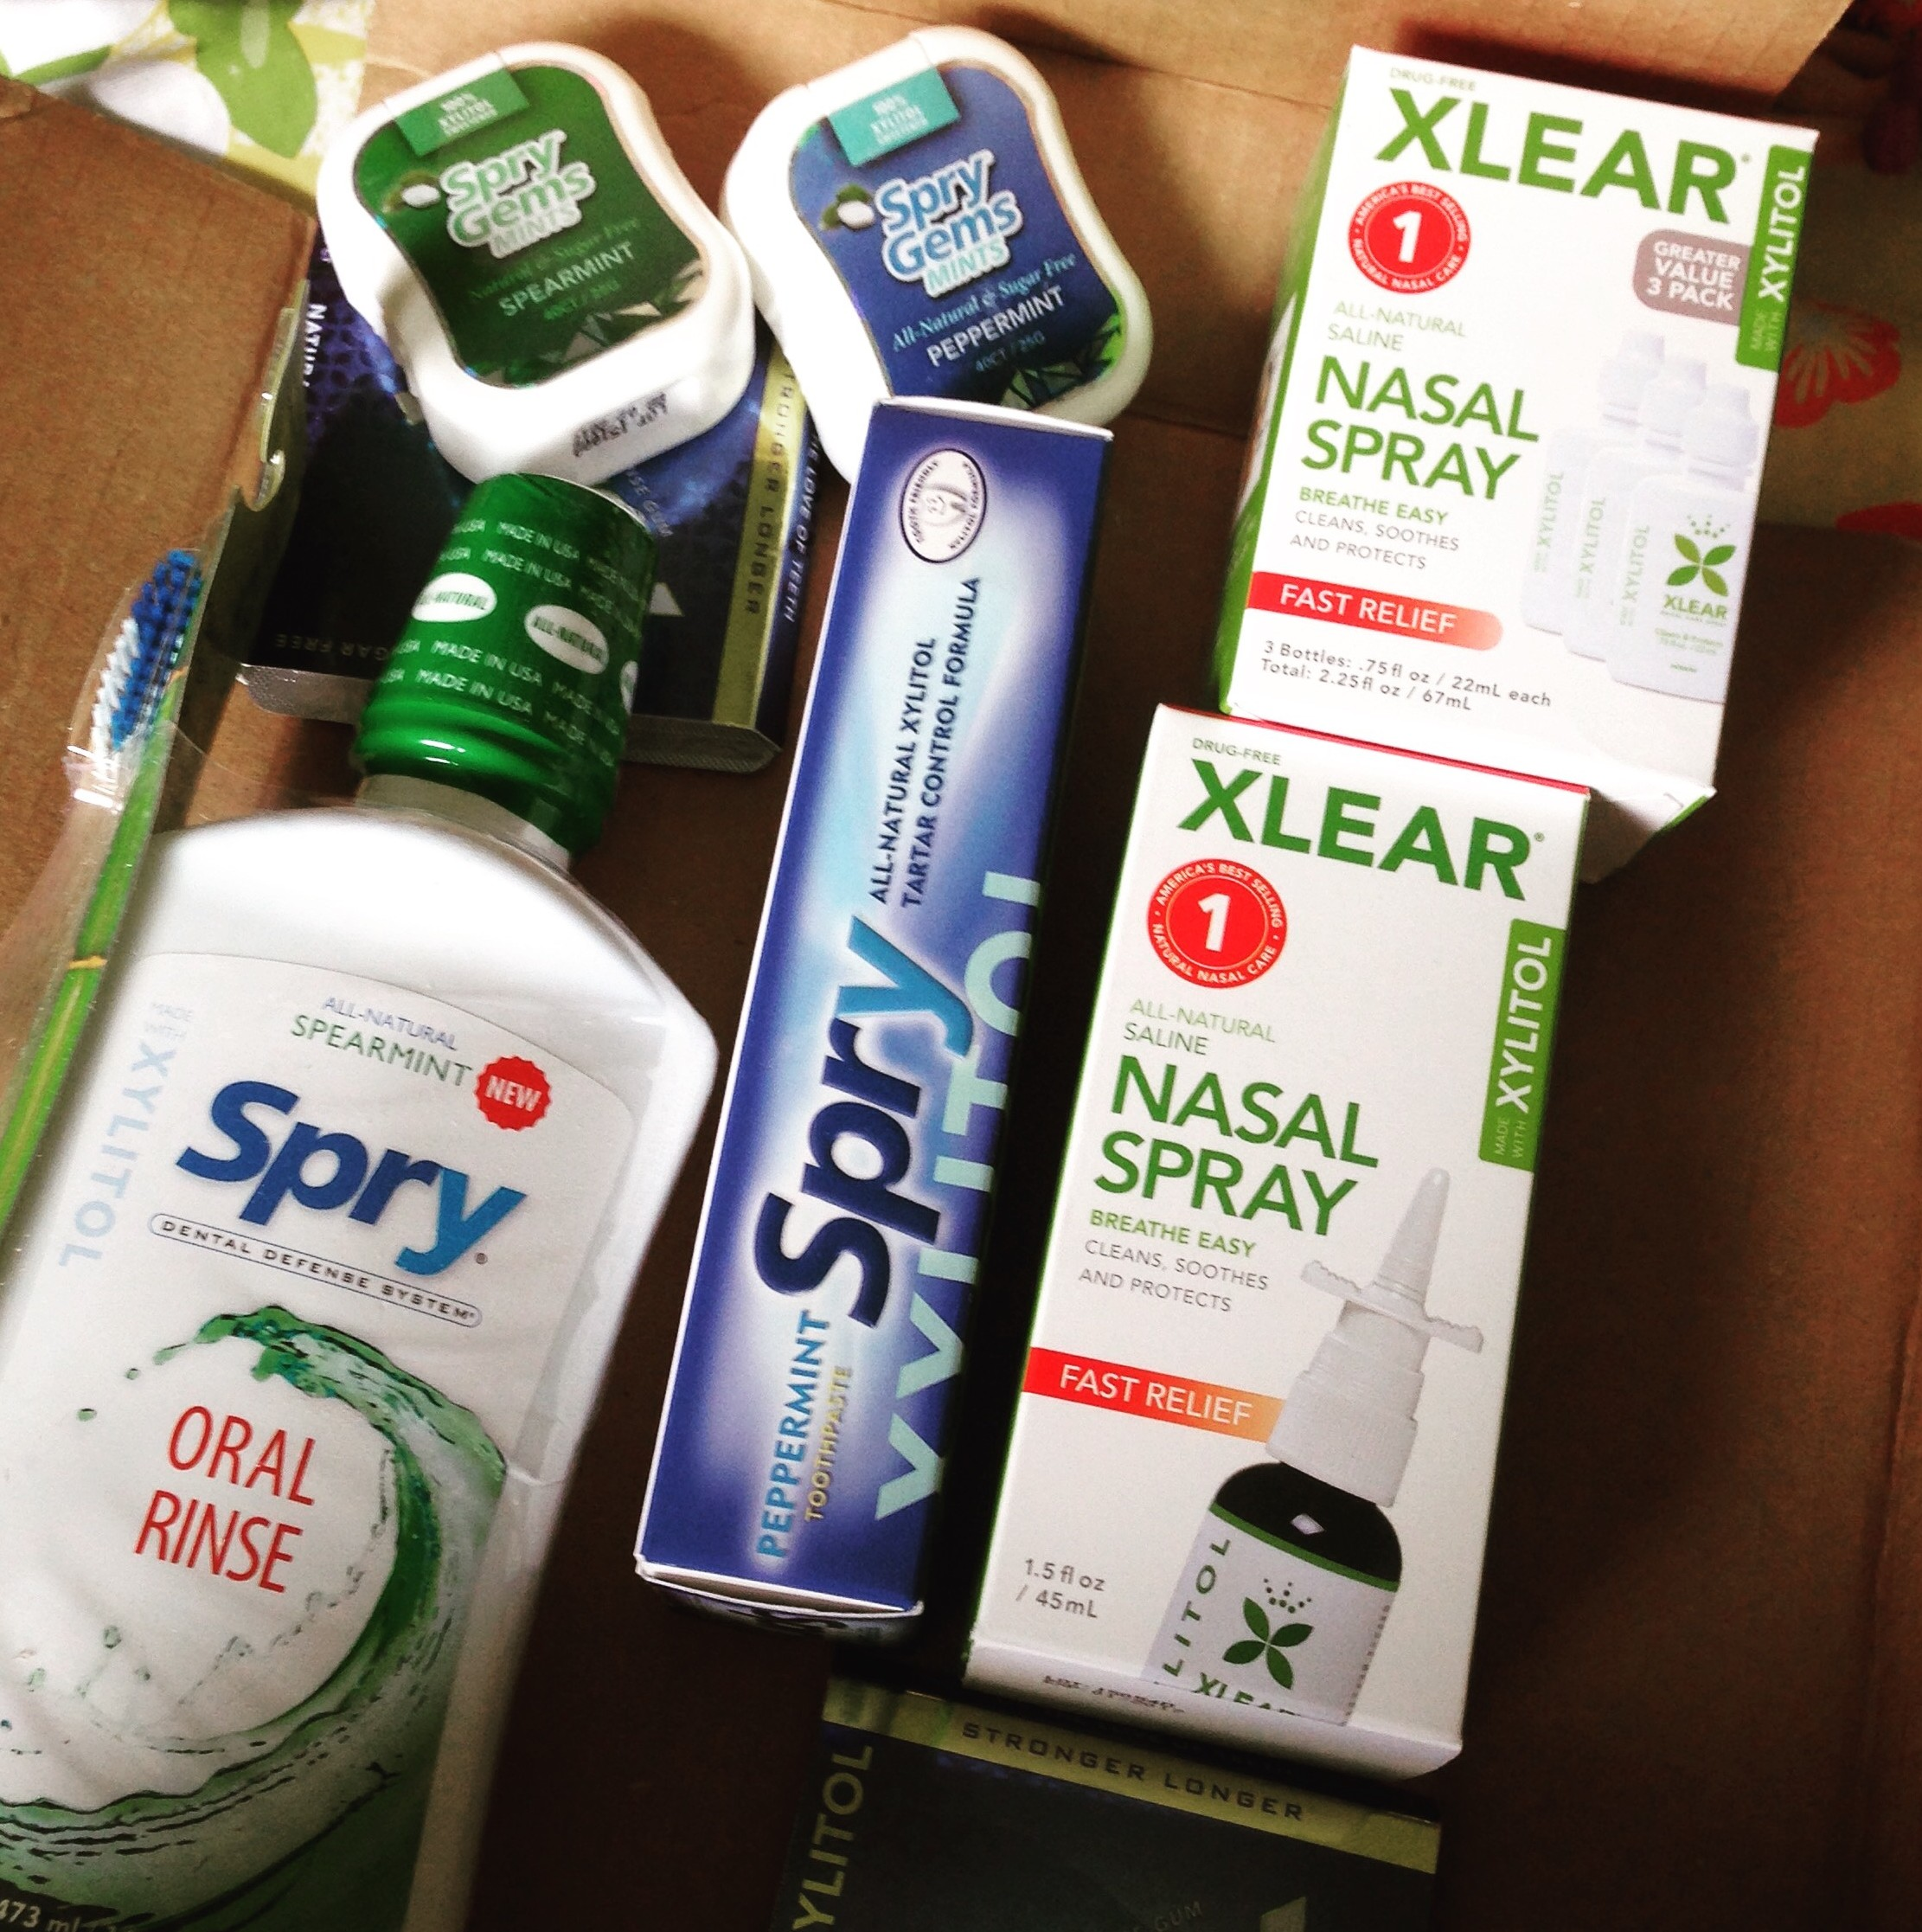 All the goodies included in my Xlear Care Kit!